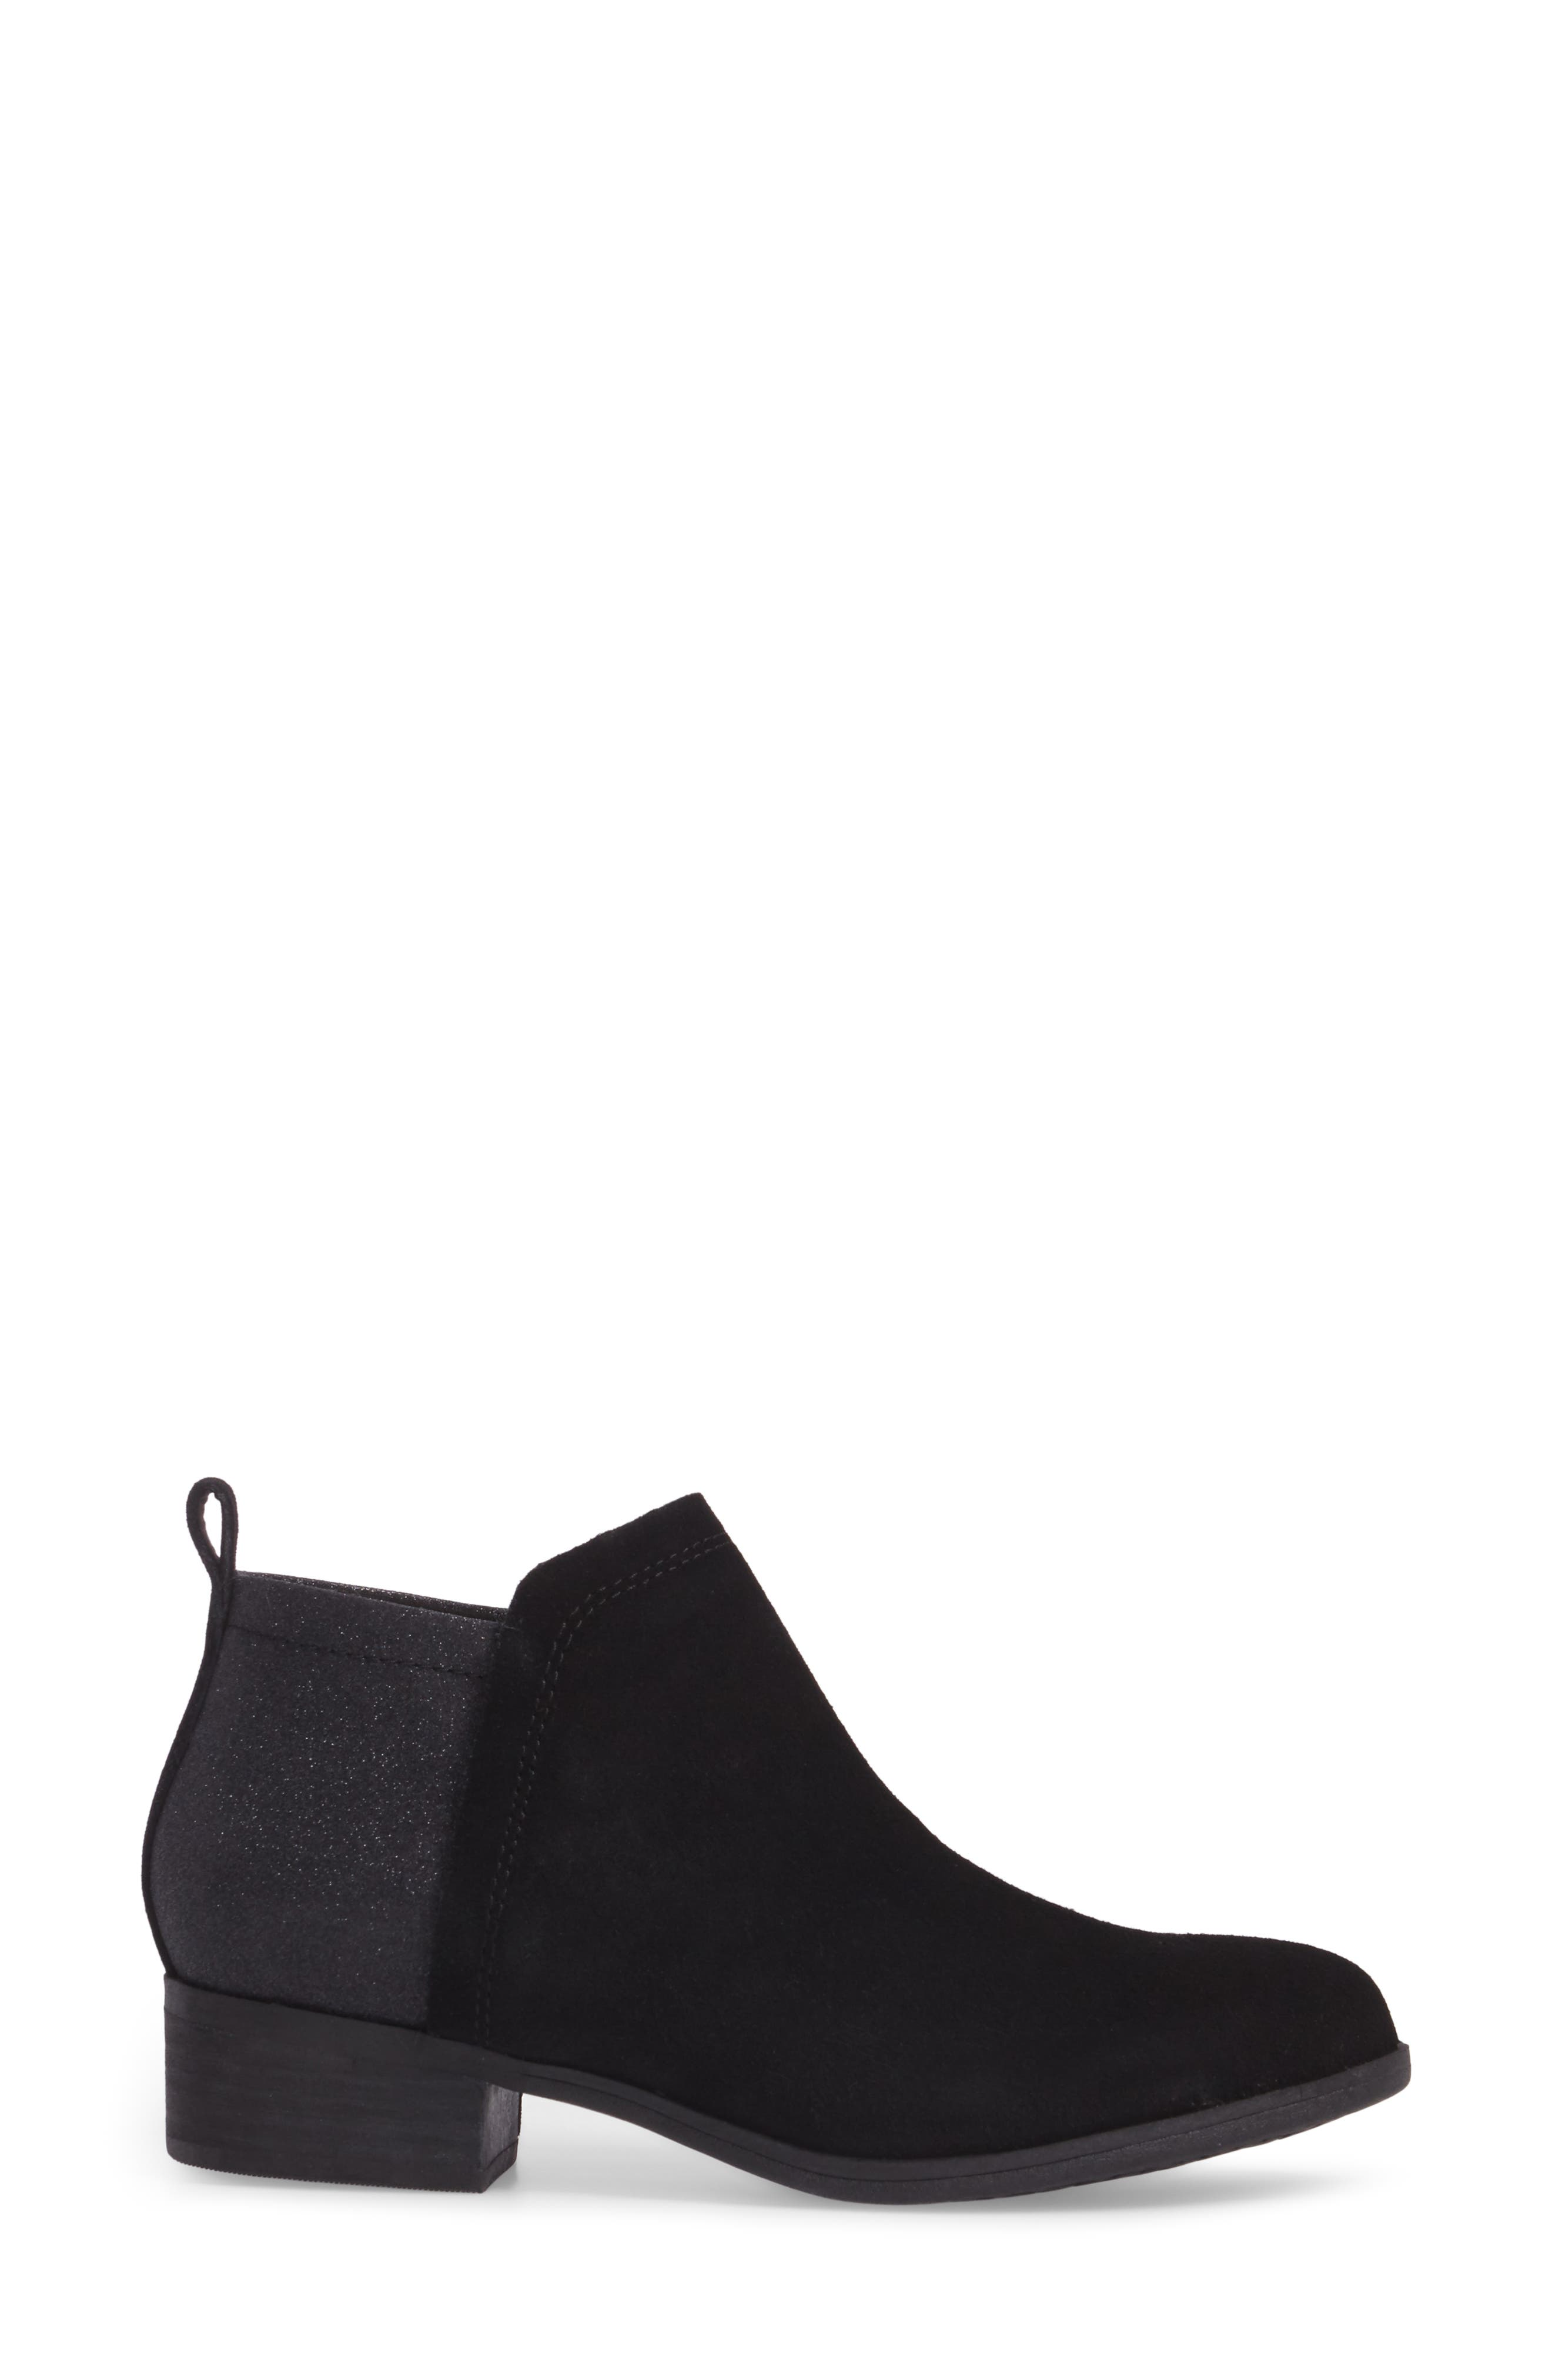 Deia Zip Bootie,                             Alternate thumbnail 25, color,